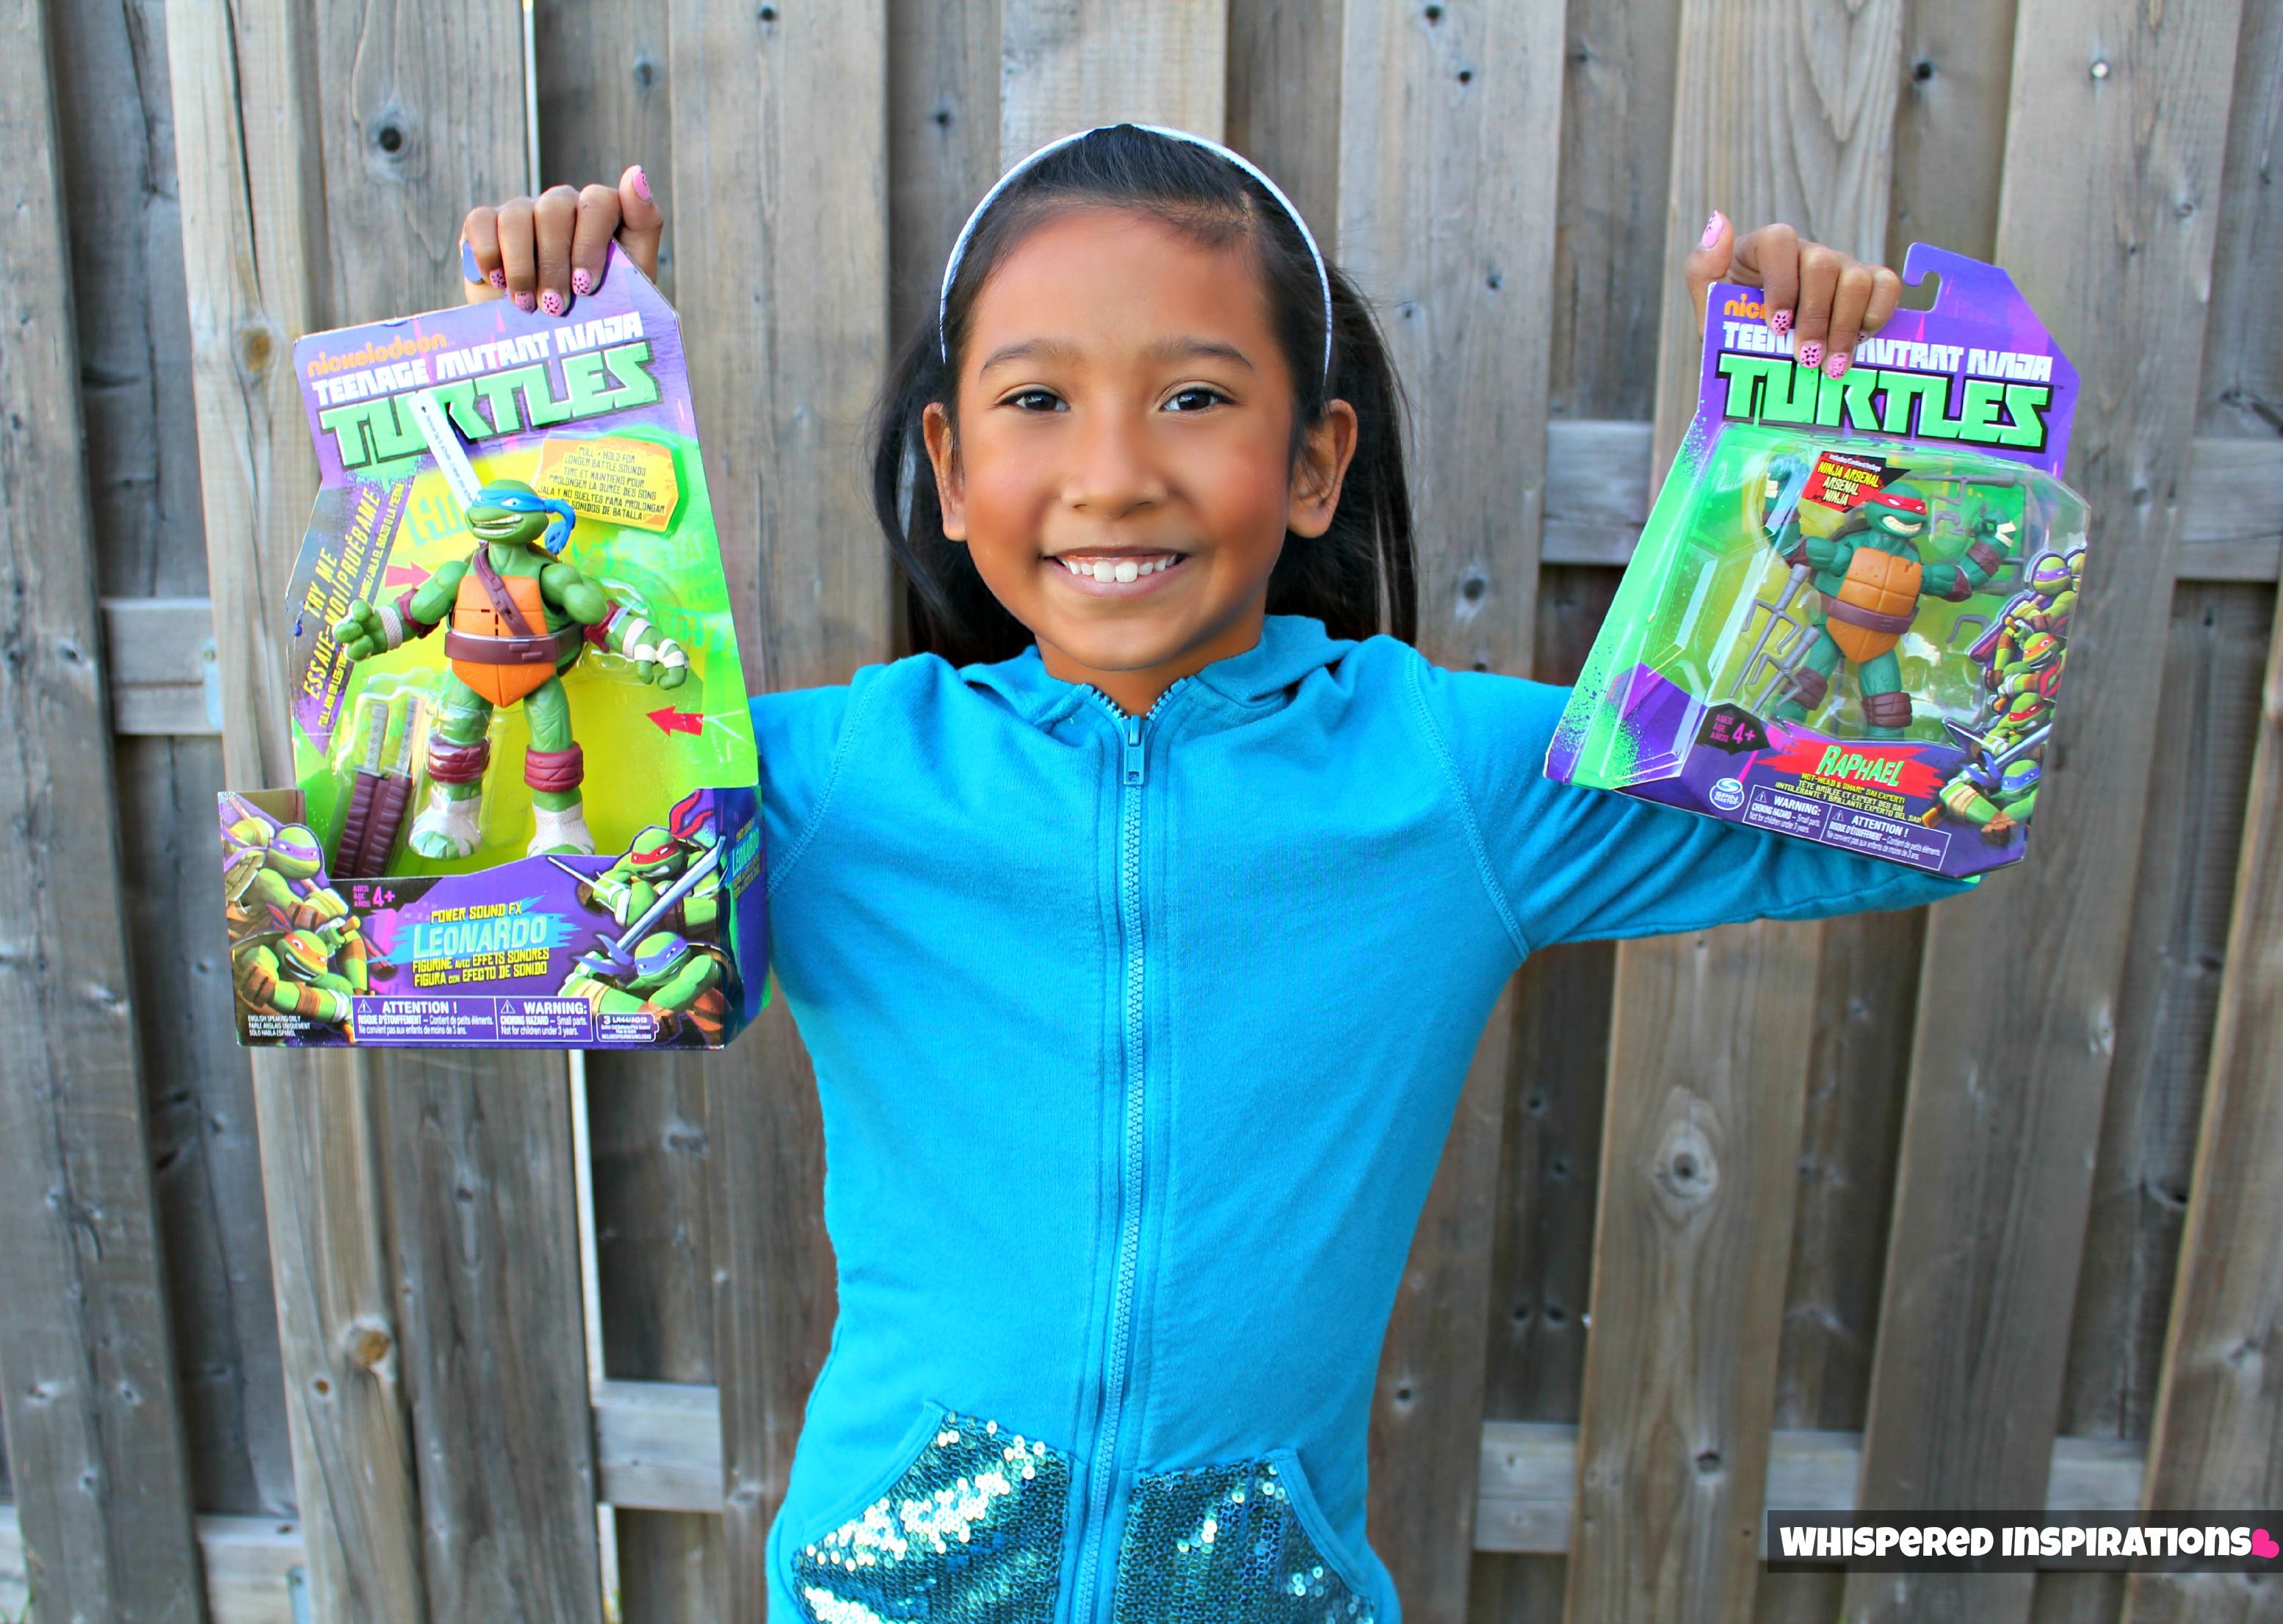 Get Ready, Teenage Mutant Ninja Turtles are Back! #HolidayGiftGuide